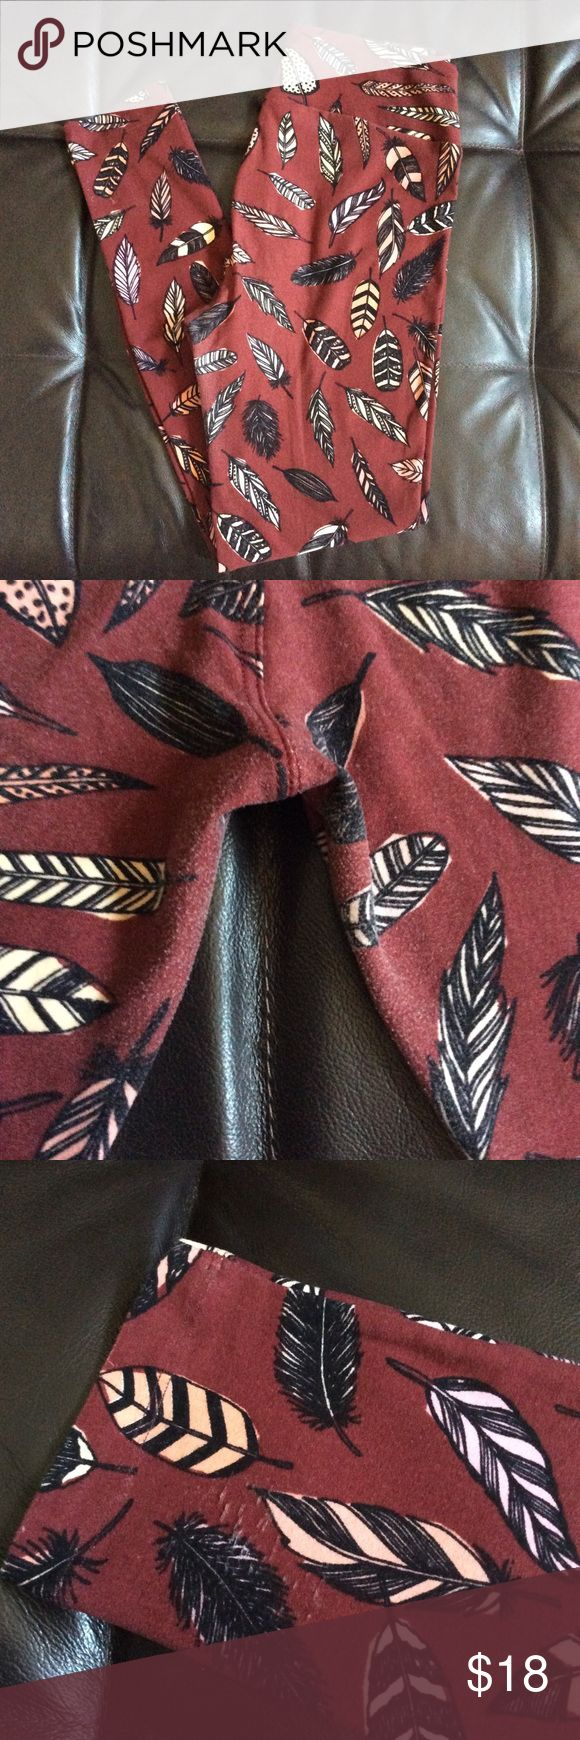 LulaRoe OS Leggings Feathers LulaRoe OS legging brown brick tone with feathers. 2nd pic (crotch shot). 3rd pic (minor pull on bottom leg). 4th pic (minor pull on bottom leg). Wear with boots so pulls won't be seen. Washed per LulaRoe instructions. Price is firm. LuLaRoe Pants Leggings